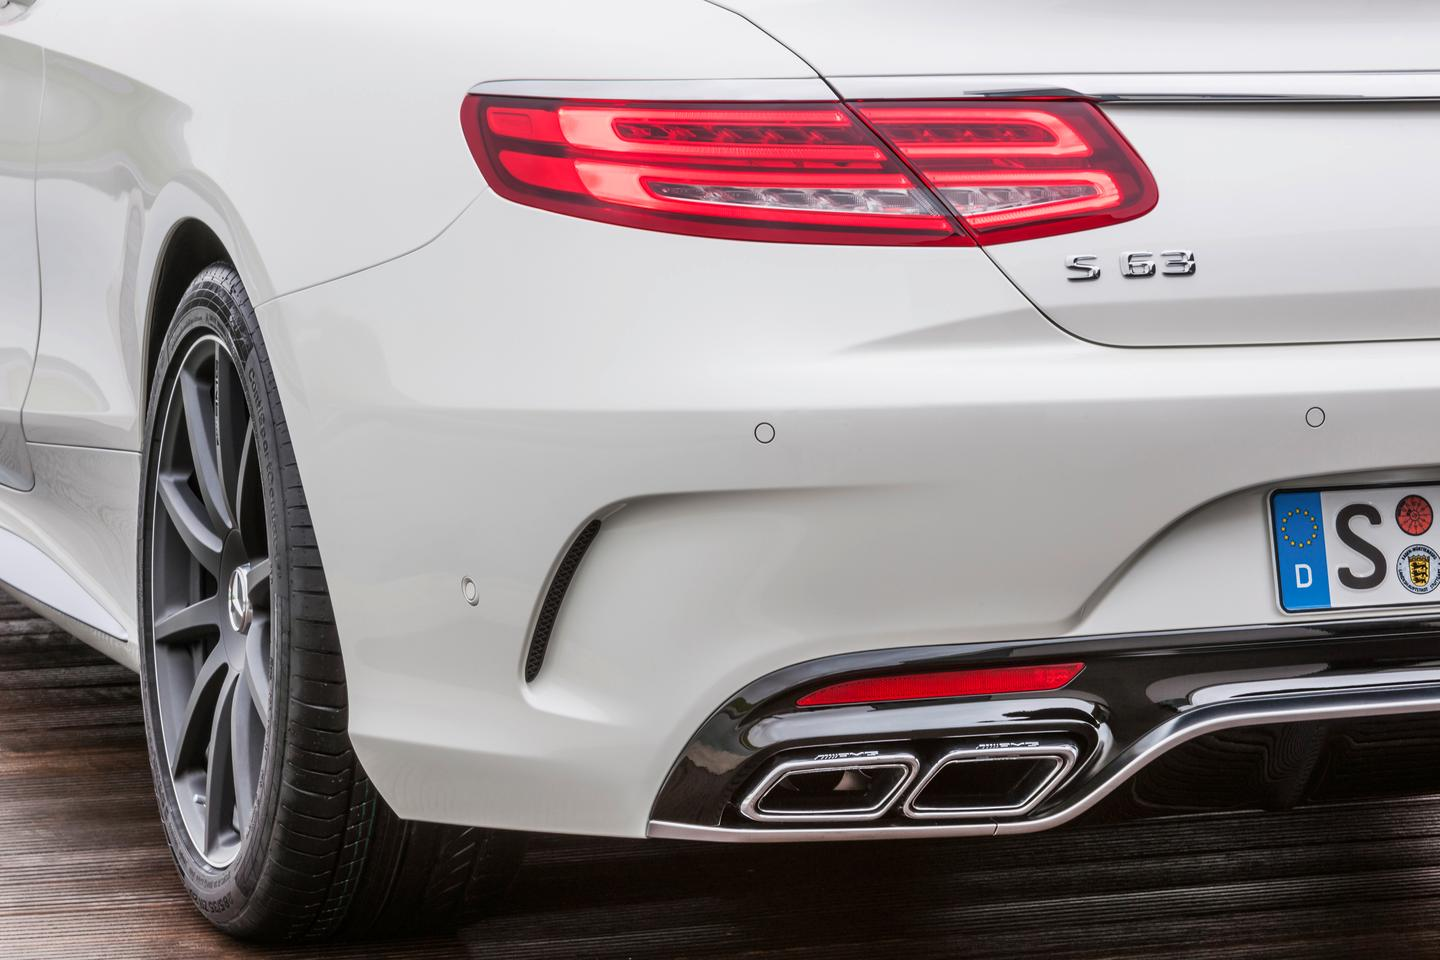 The S63 AMG Coupé features active baffles in the exhaust, an auditory gimmick that changes the aural outcry of the V8 when pushed towards the upper rev range